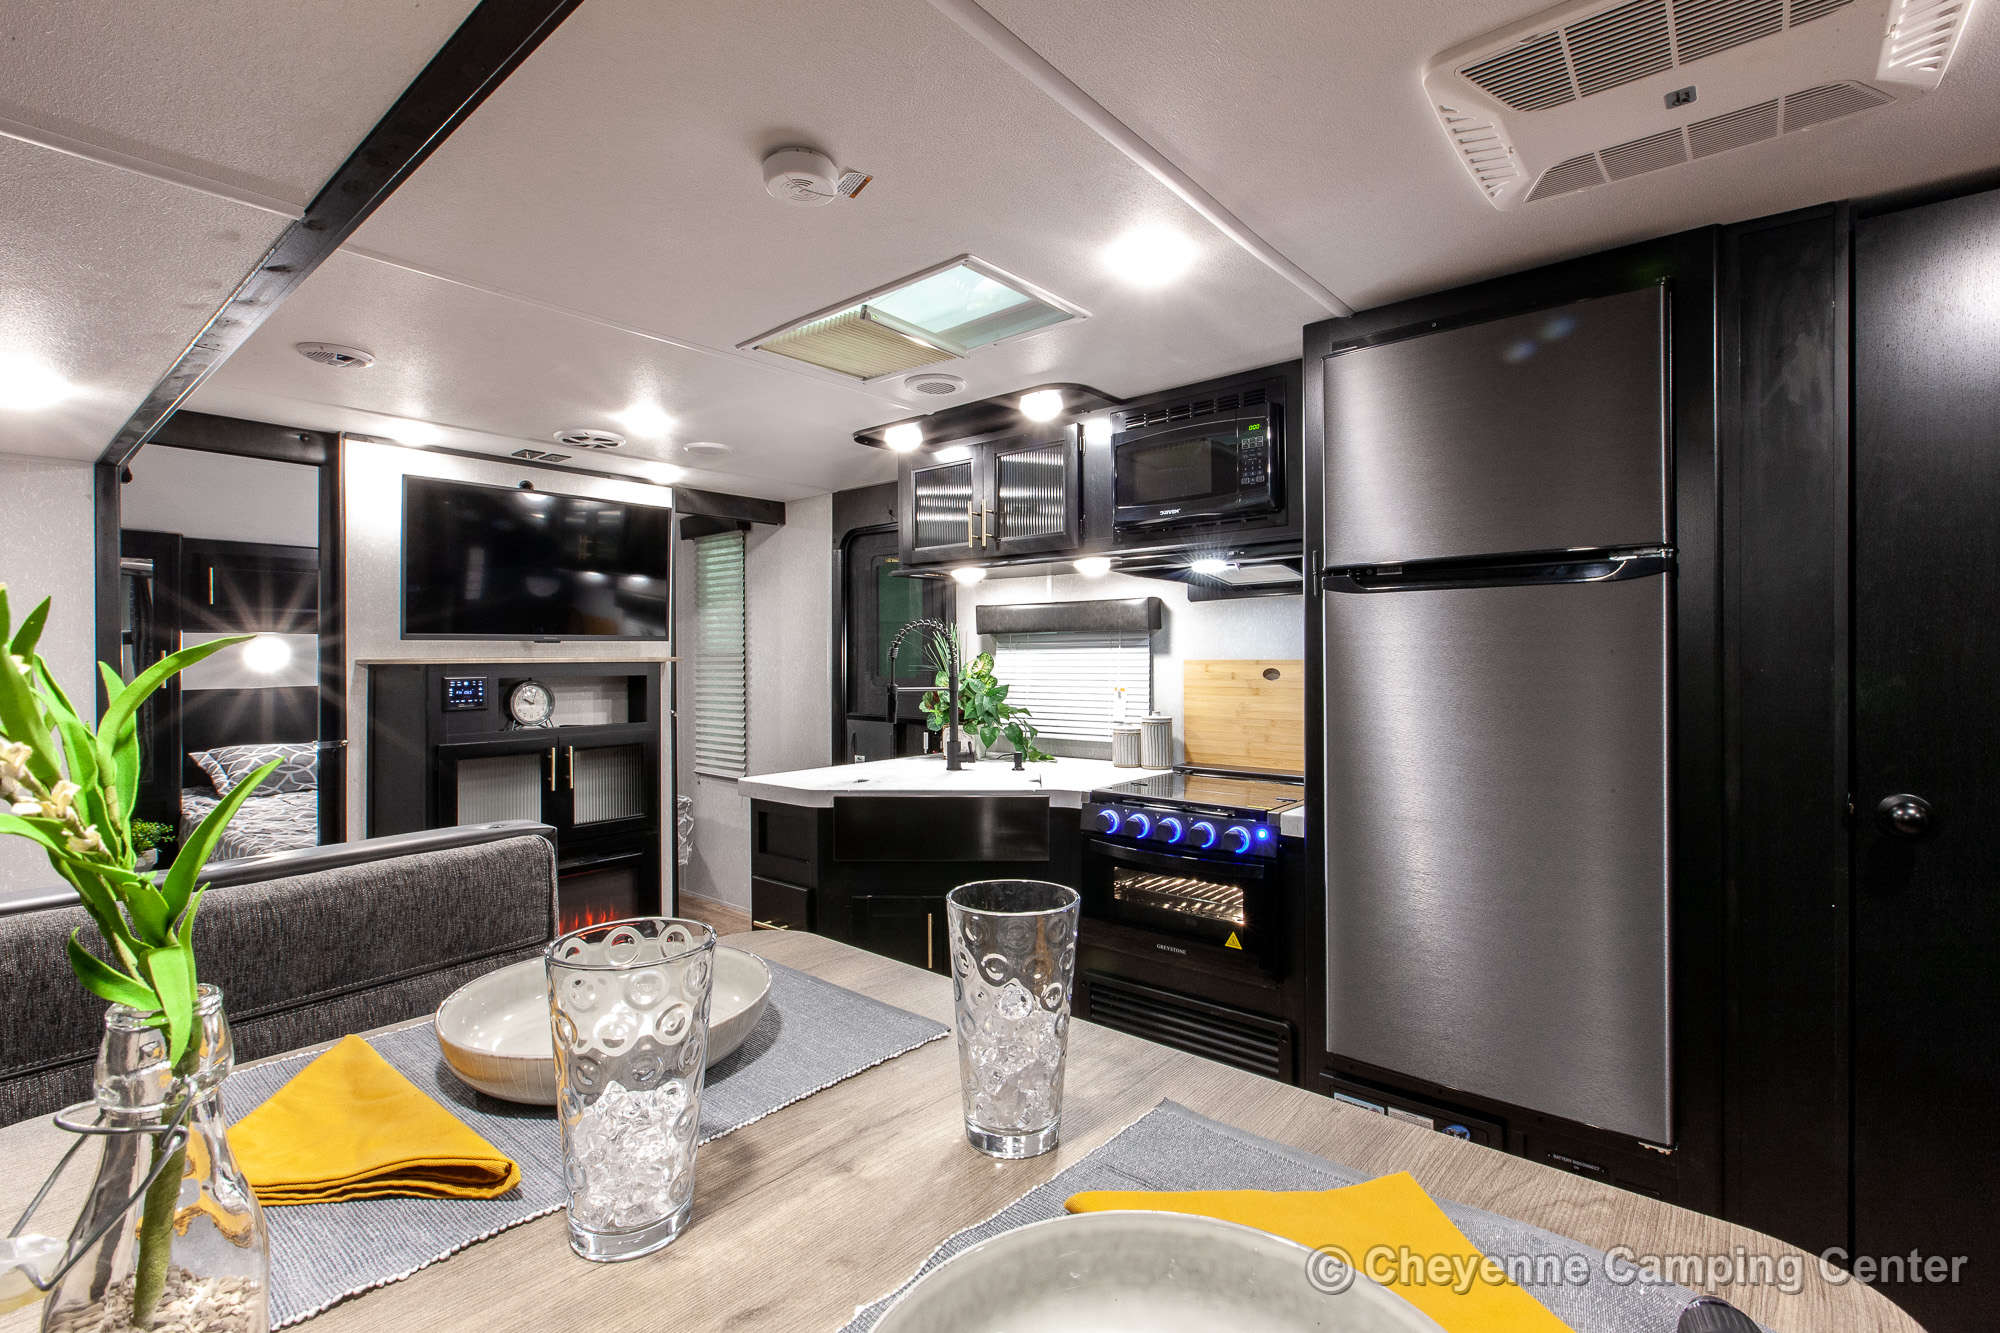 2021 Forest River Cherokee Grey Wolf 26DBH Bunkhouse Travel Trailer Interior Image